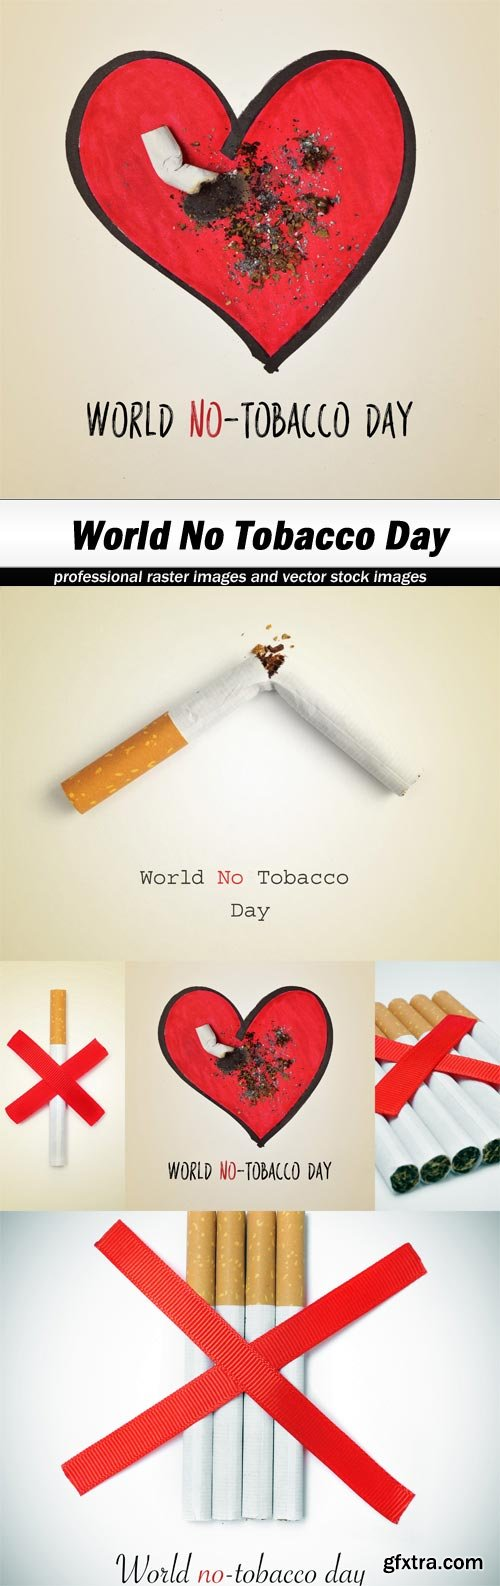 World No Tobacco Day - 5 UHQ JPEG